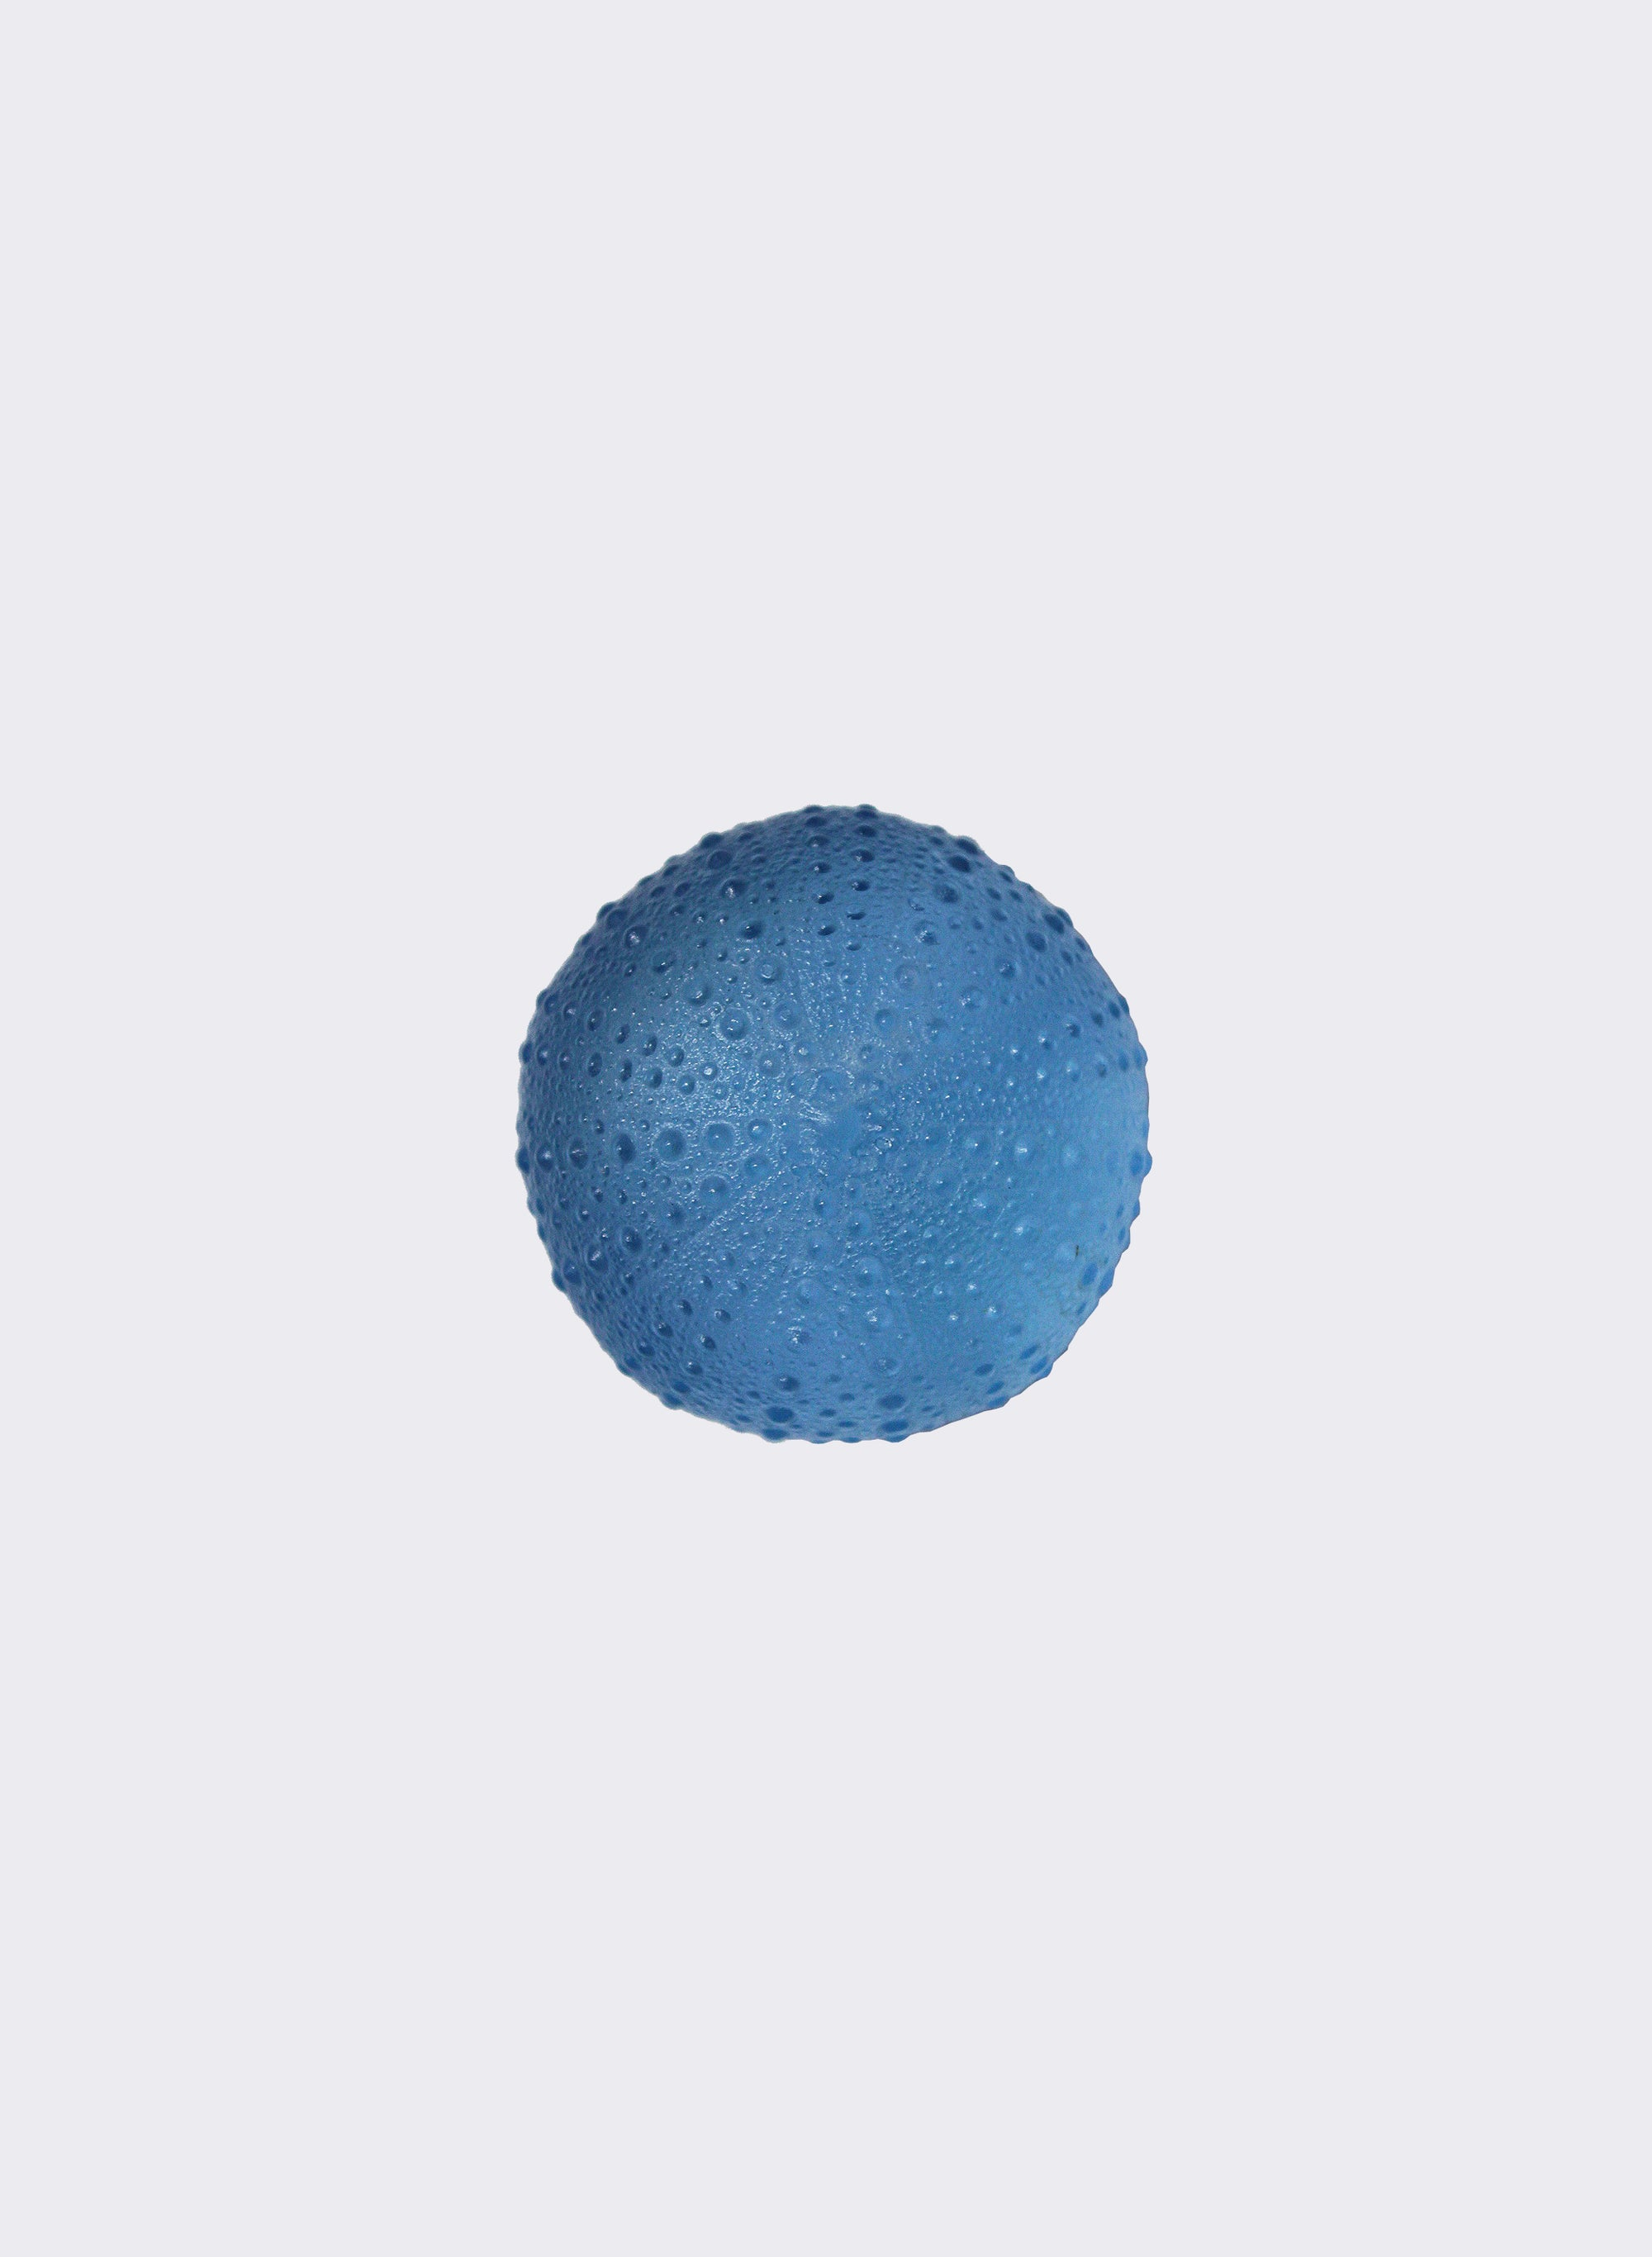 Large Sea Urchin - Pale Cobalt